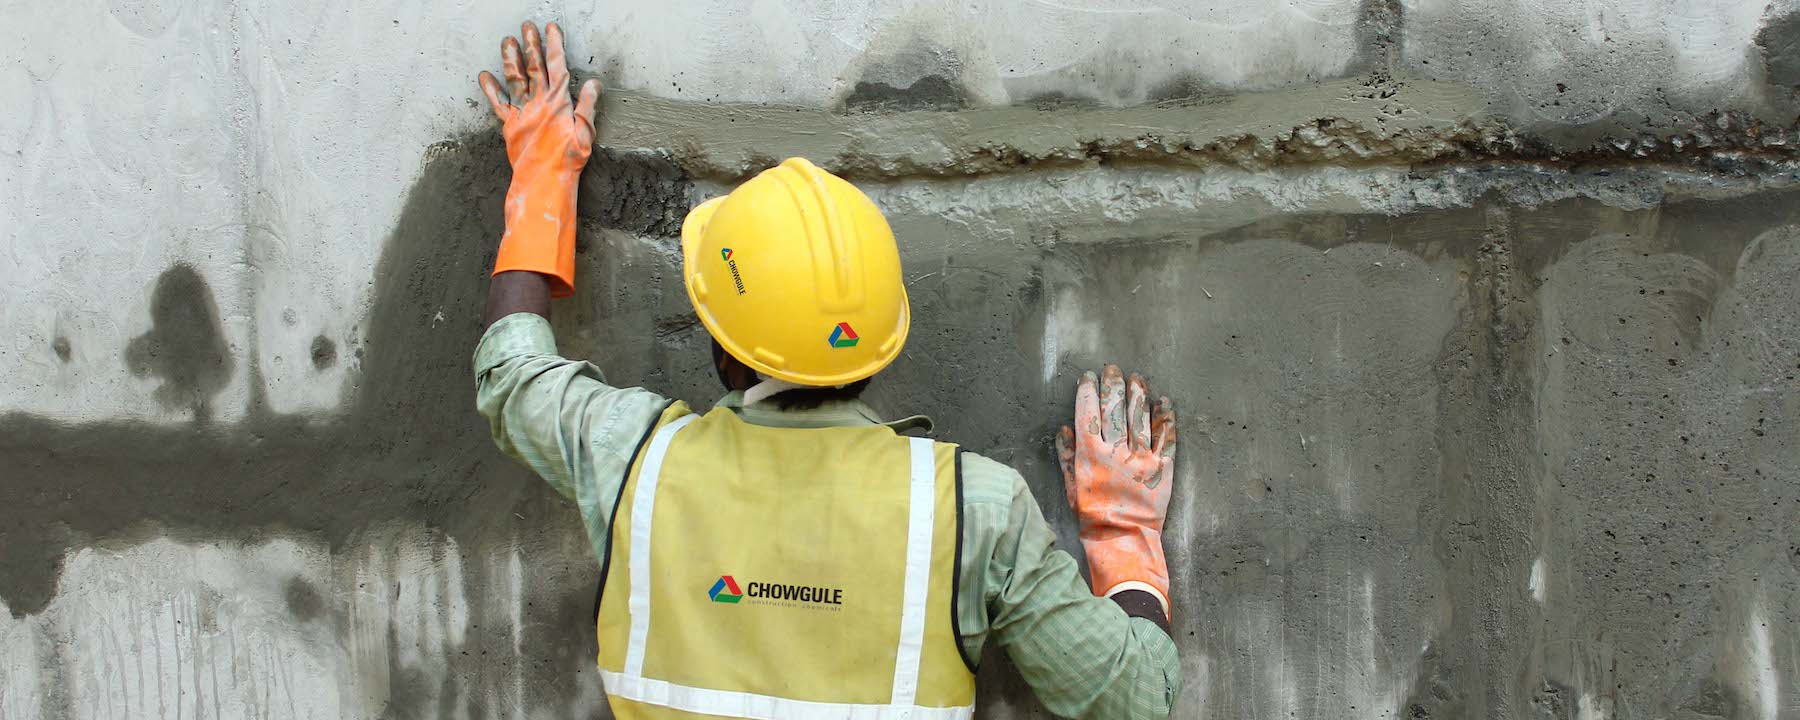 chowgule construction chemicals trusted name in the waterproofing industry